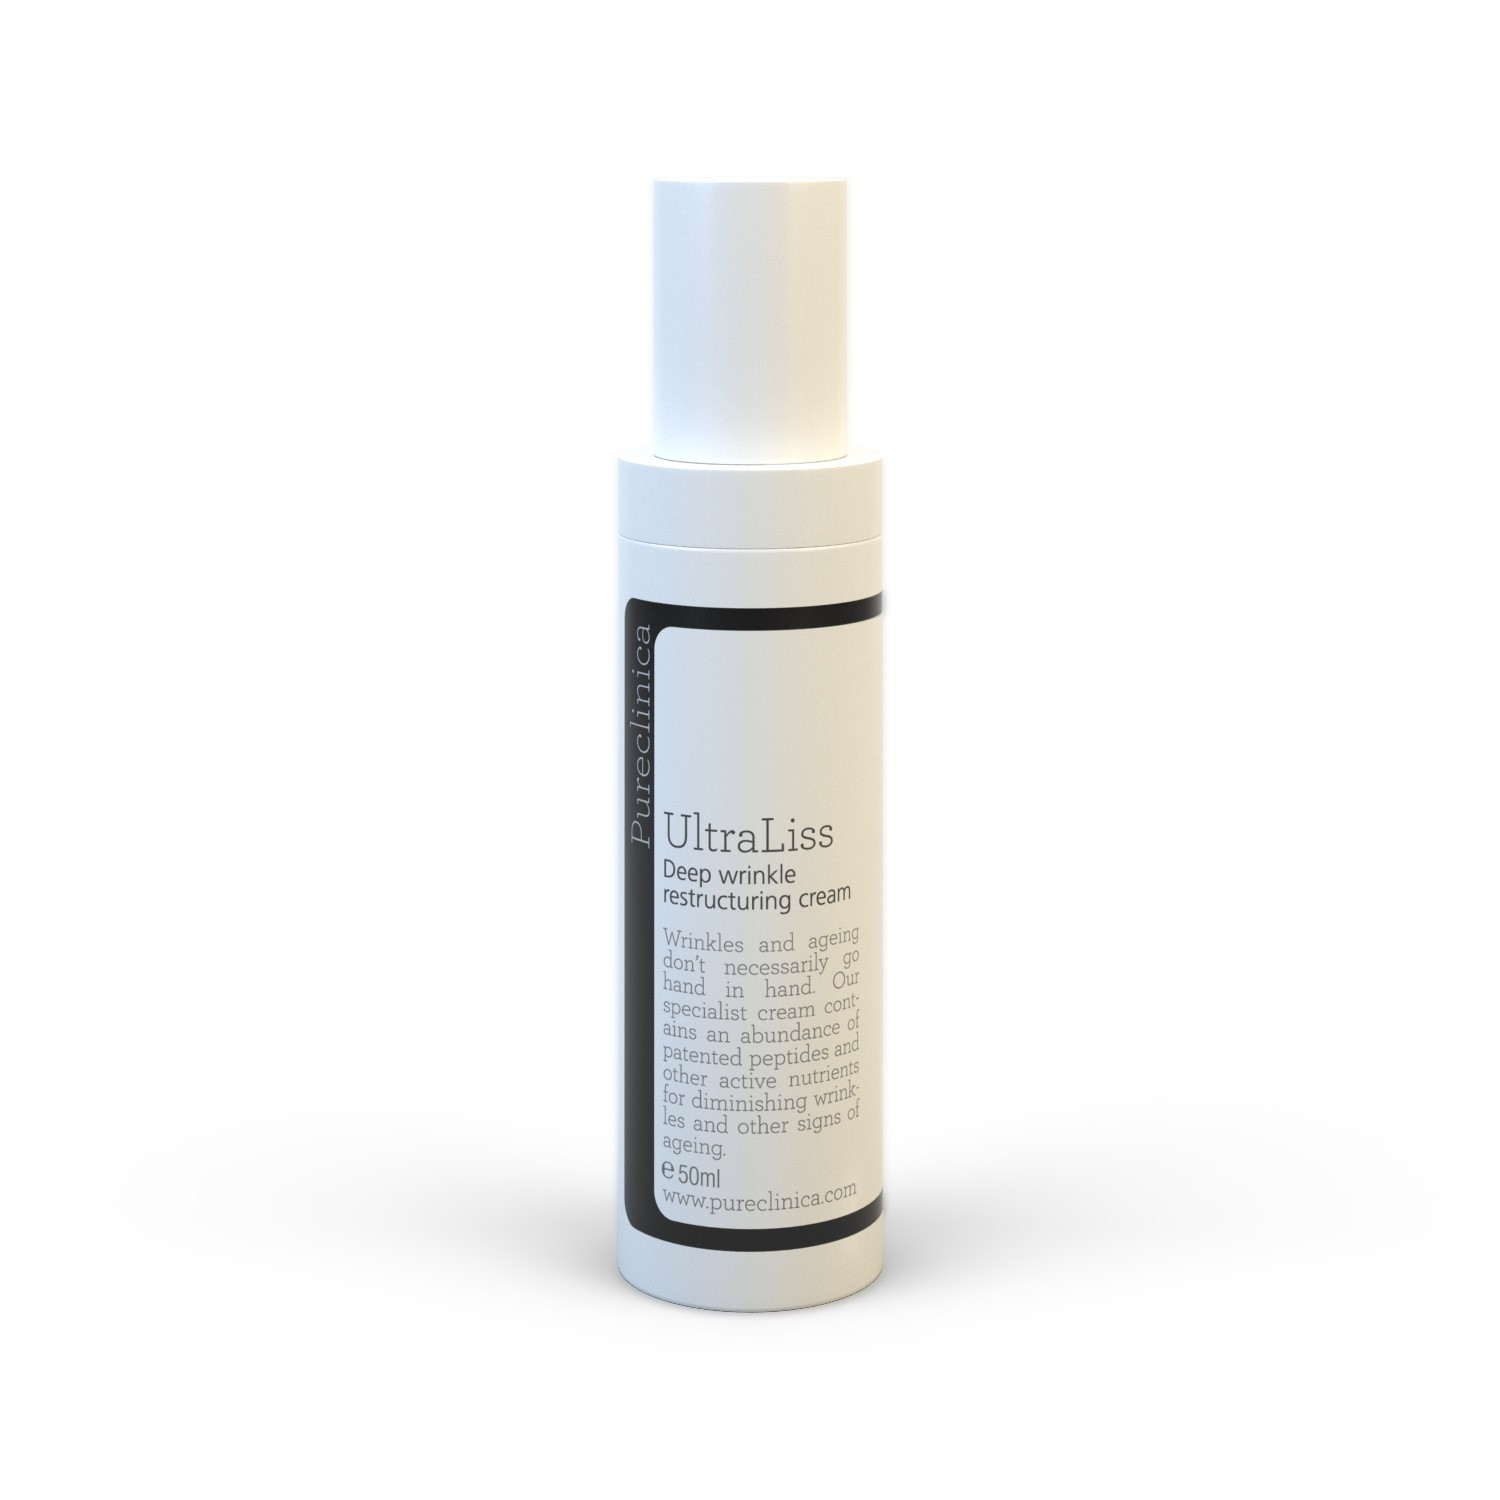 Ultraliss Deep Wrinkle Restructuring Cream